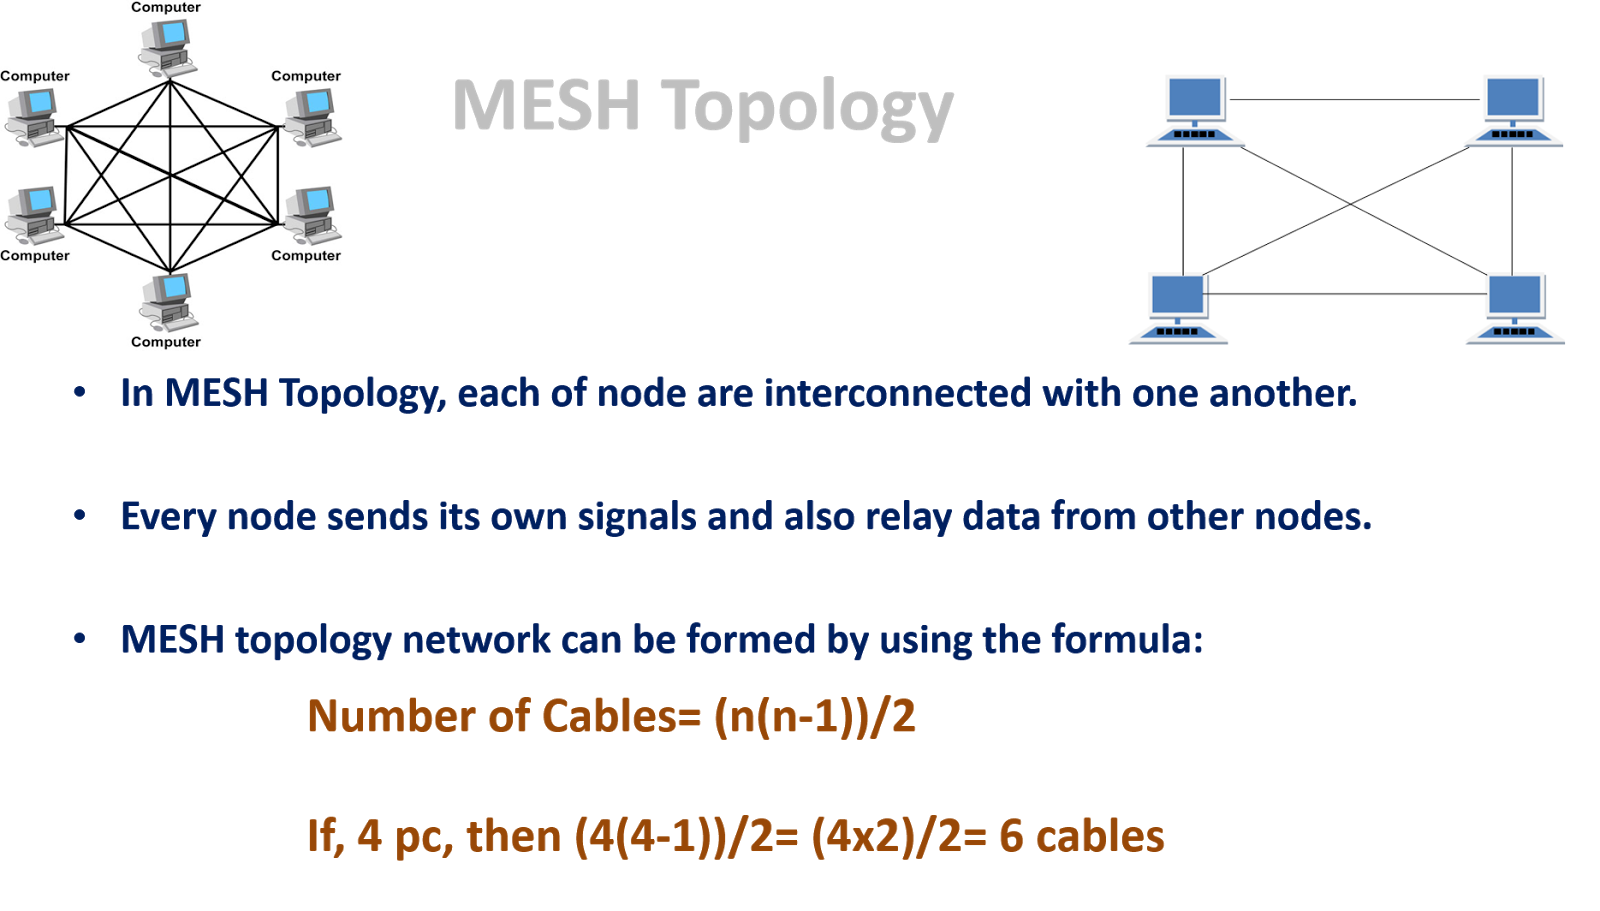 advantages and disadvantages of star topology diagram yard machine mower deck network topologies its